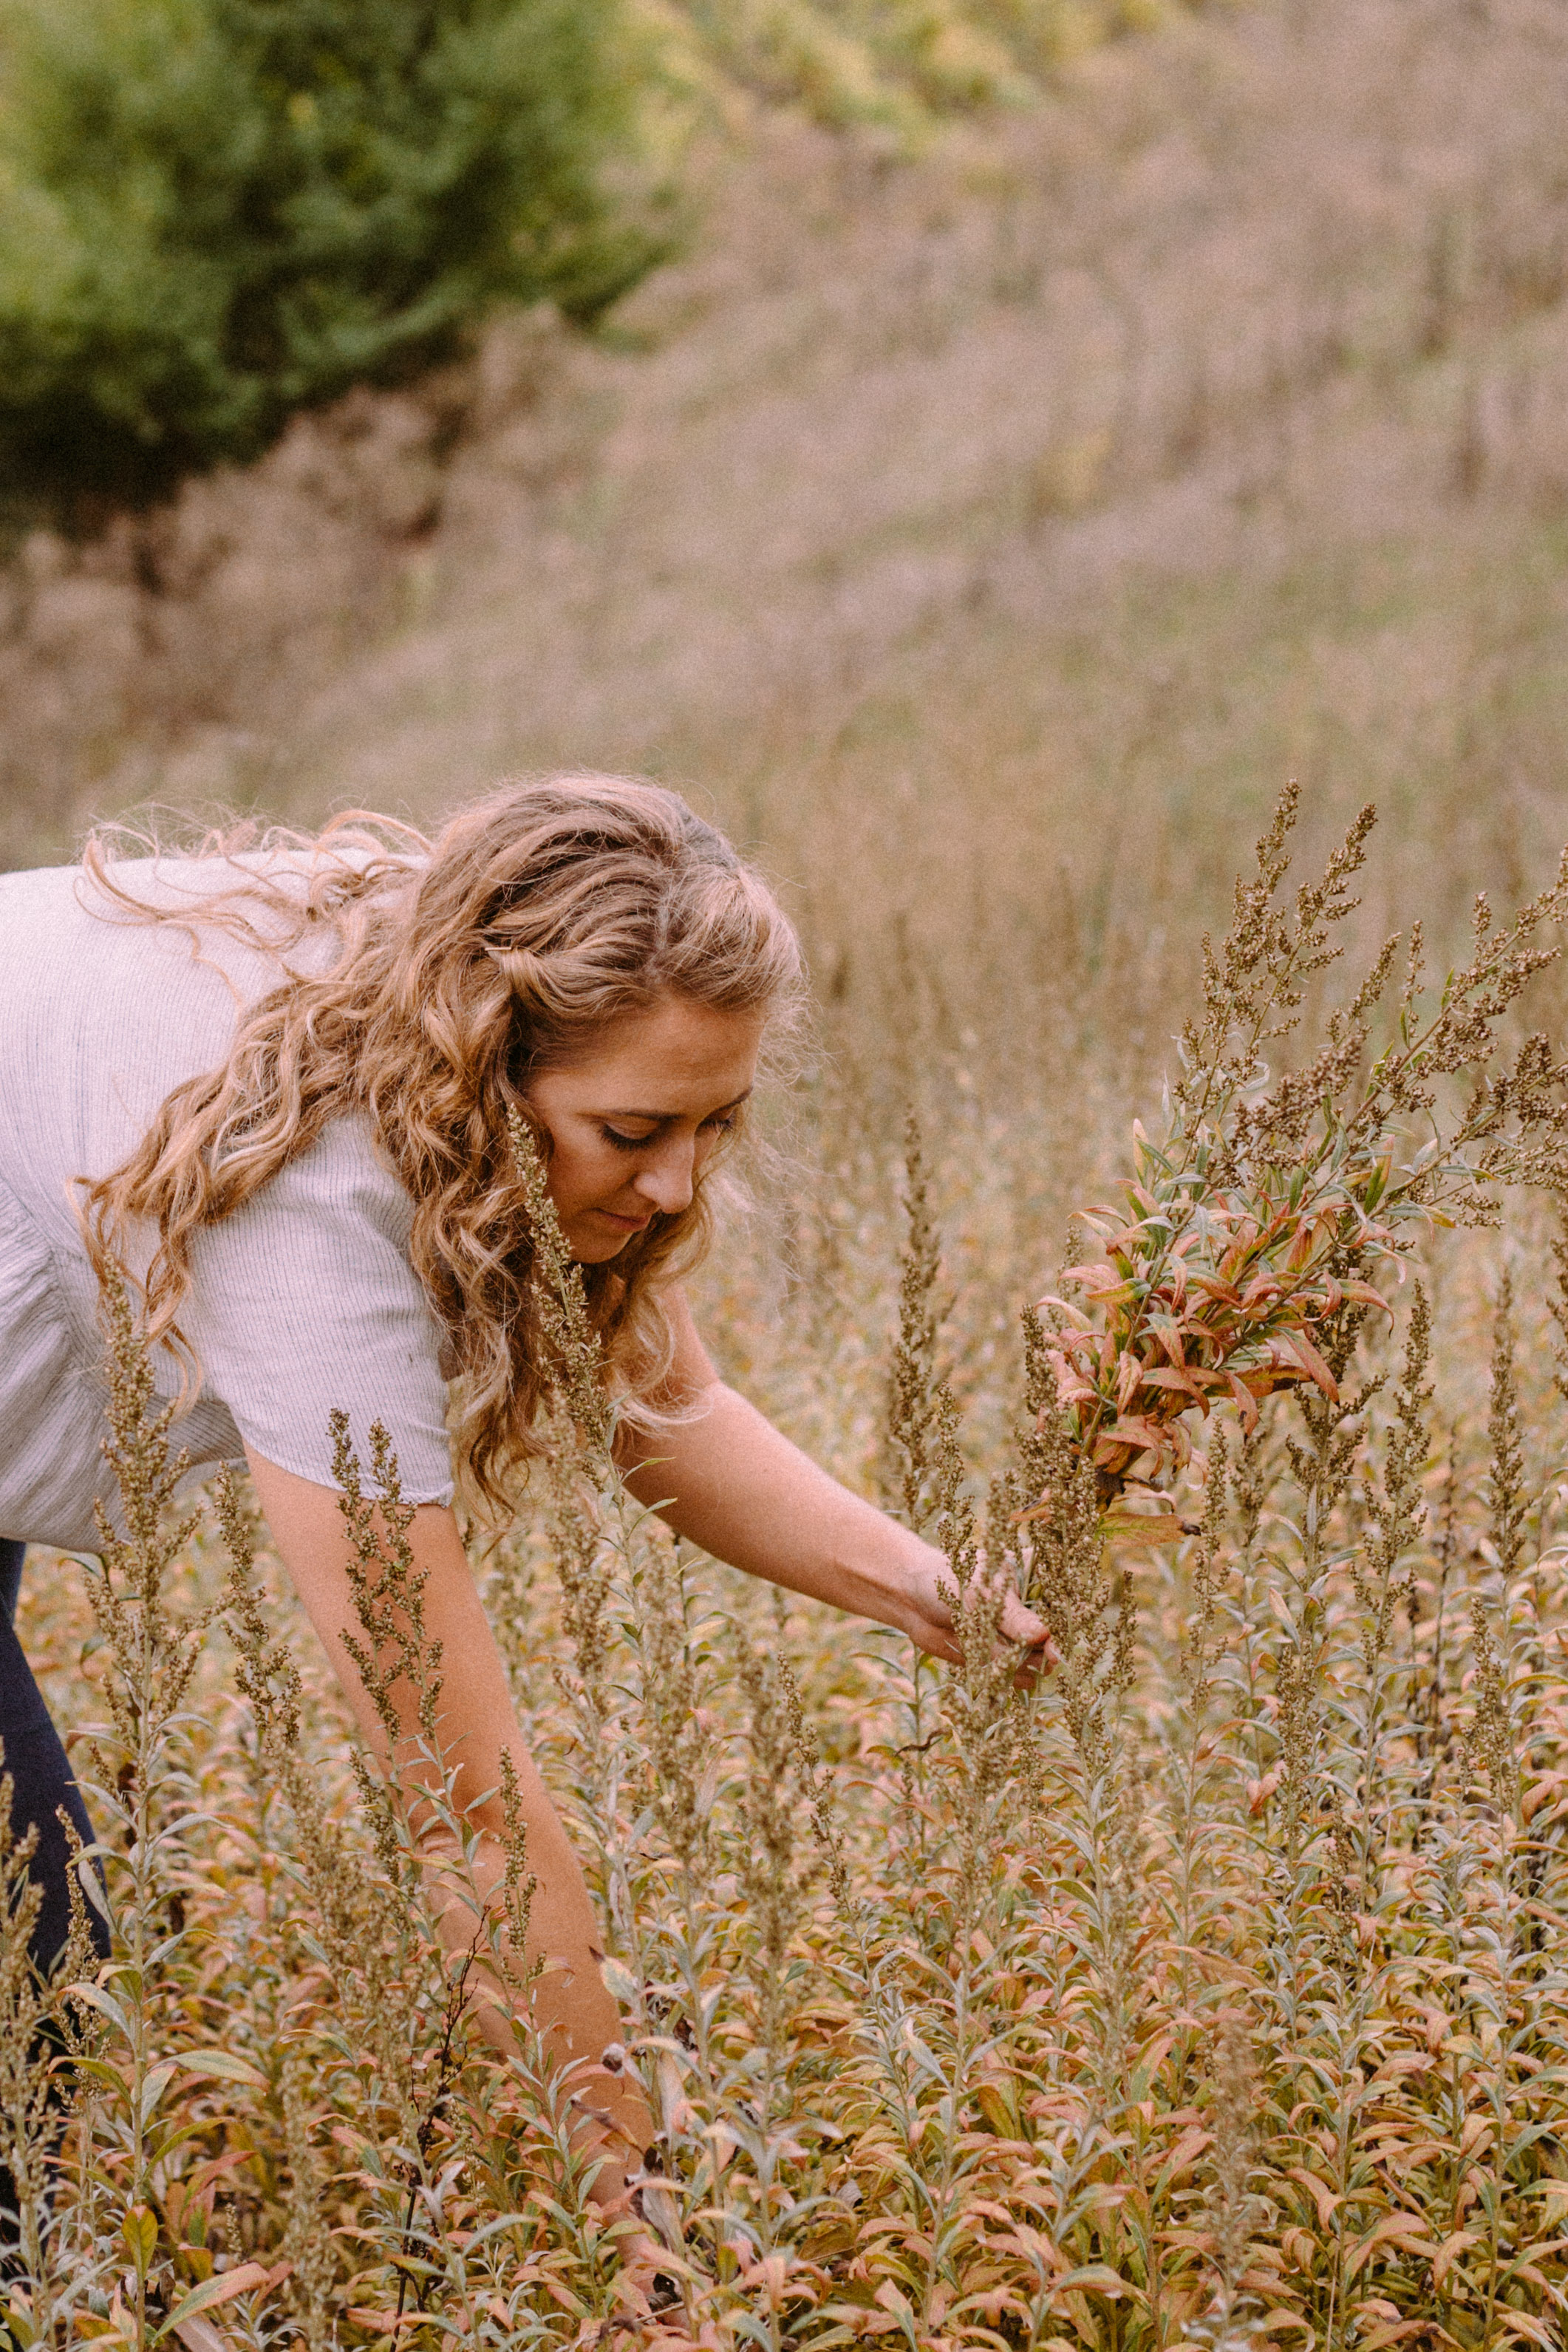 Camille out foraging on her family's farm for delicate, golden seed heads for Venn Floral's ethereal designs. Photographed by Collin Morrow.